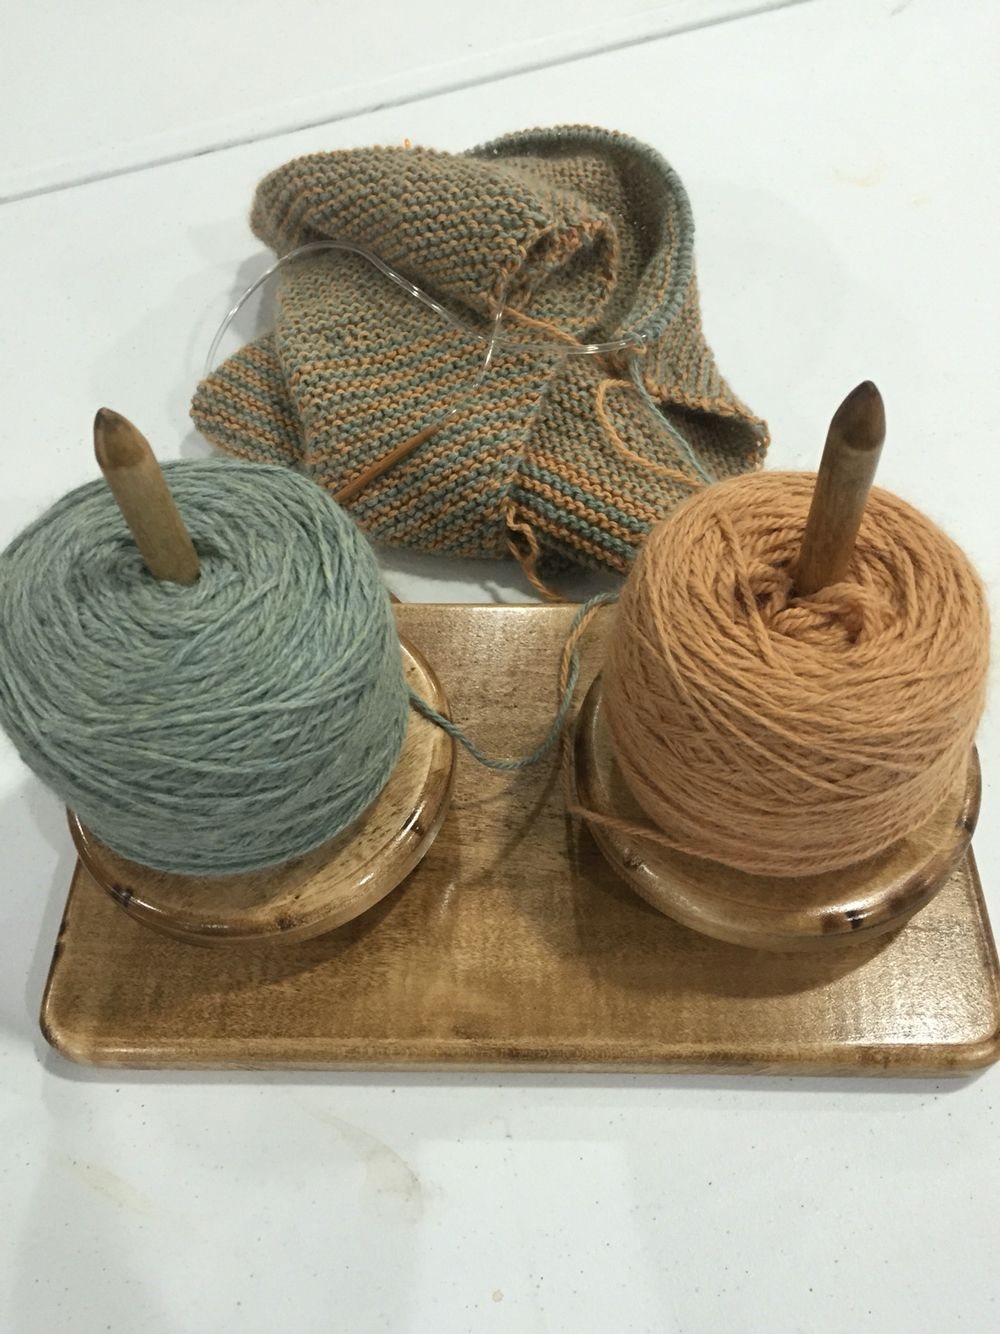 This two skein or Hank holder is perfect for all that two color work! It's hand crafted by Criative Threads and available in their Facebook page or by emailing Yarns@criativethreads.com